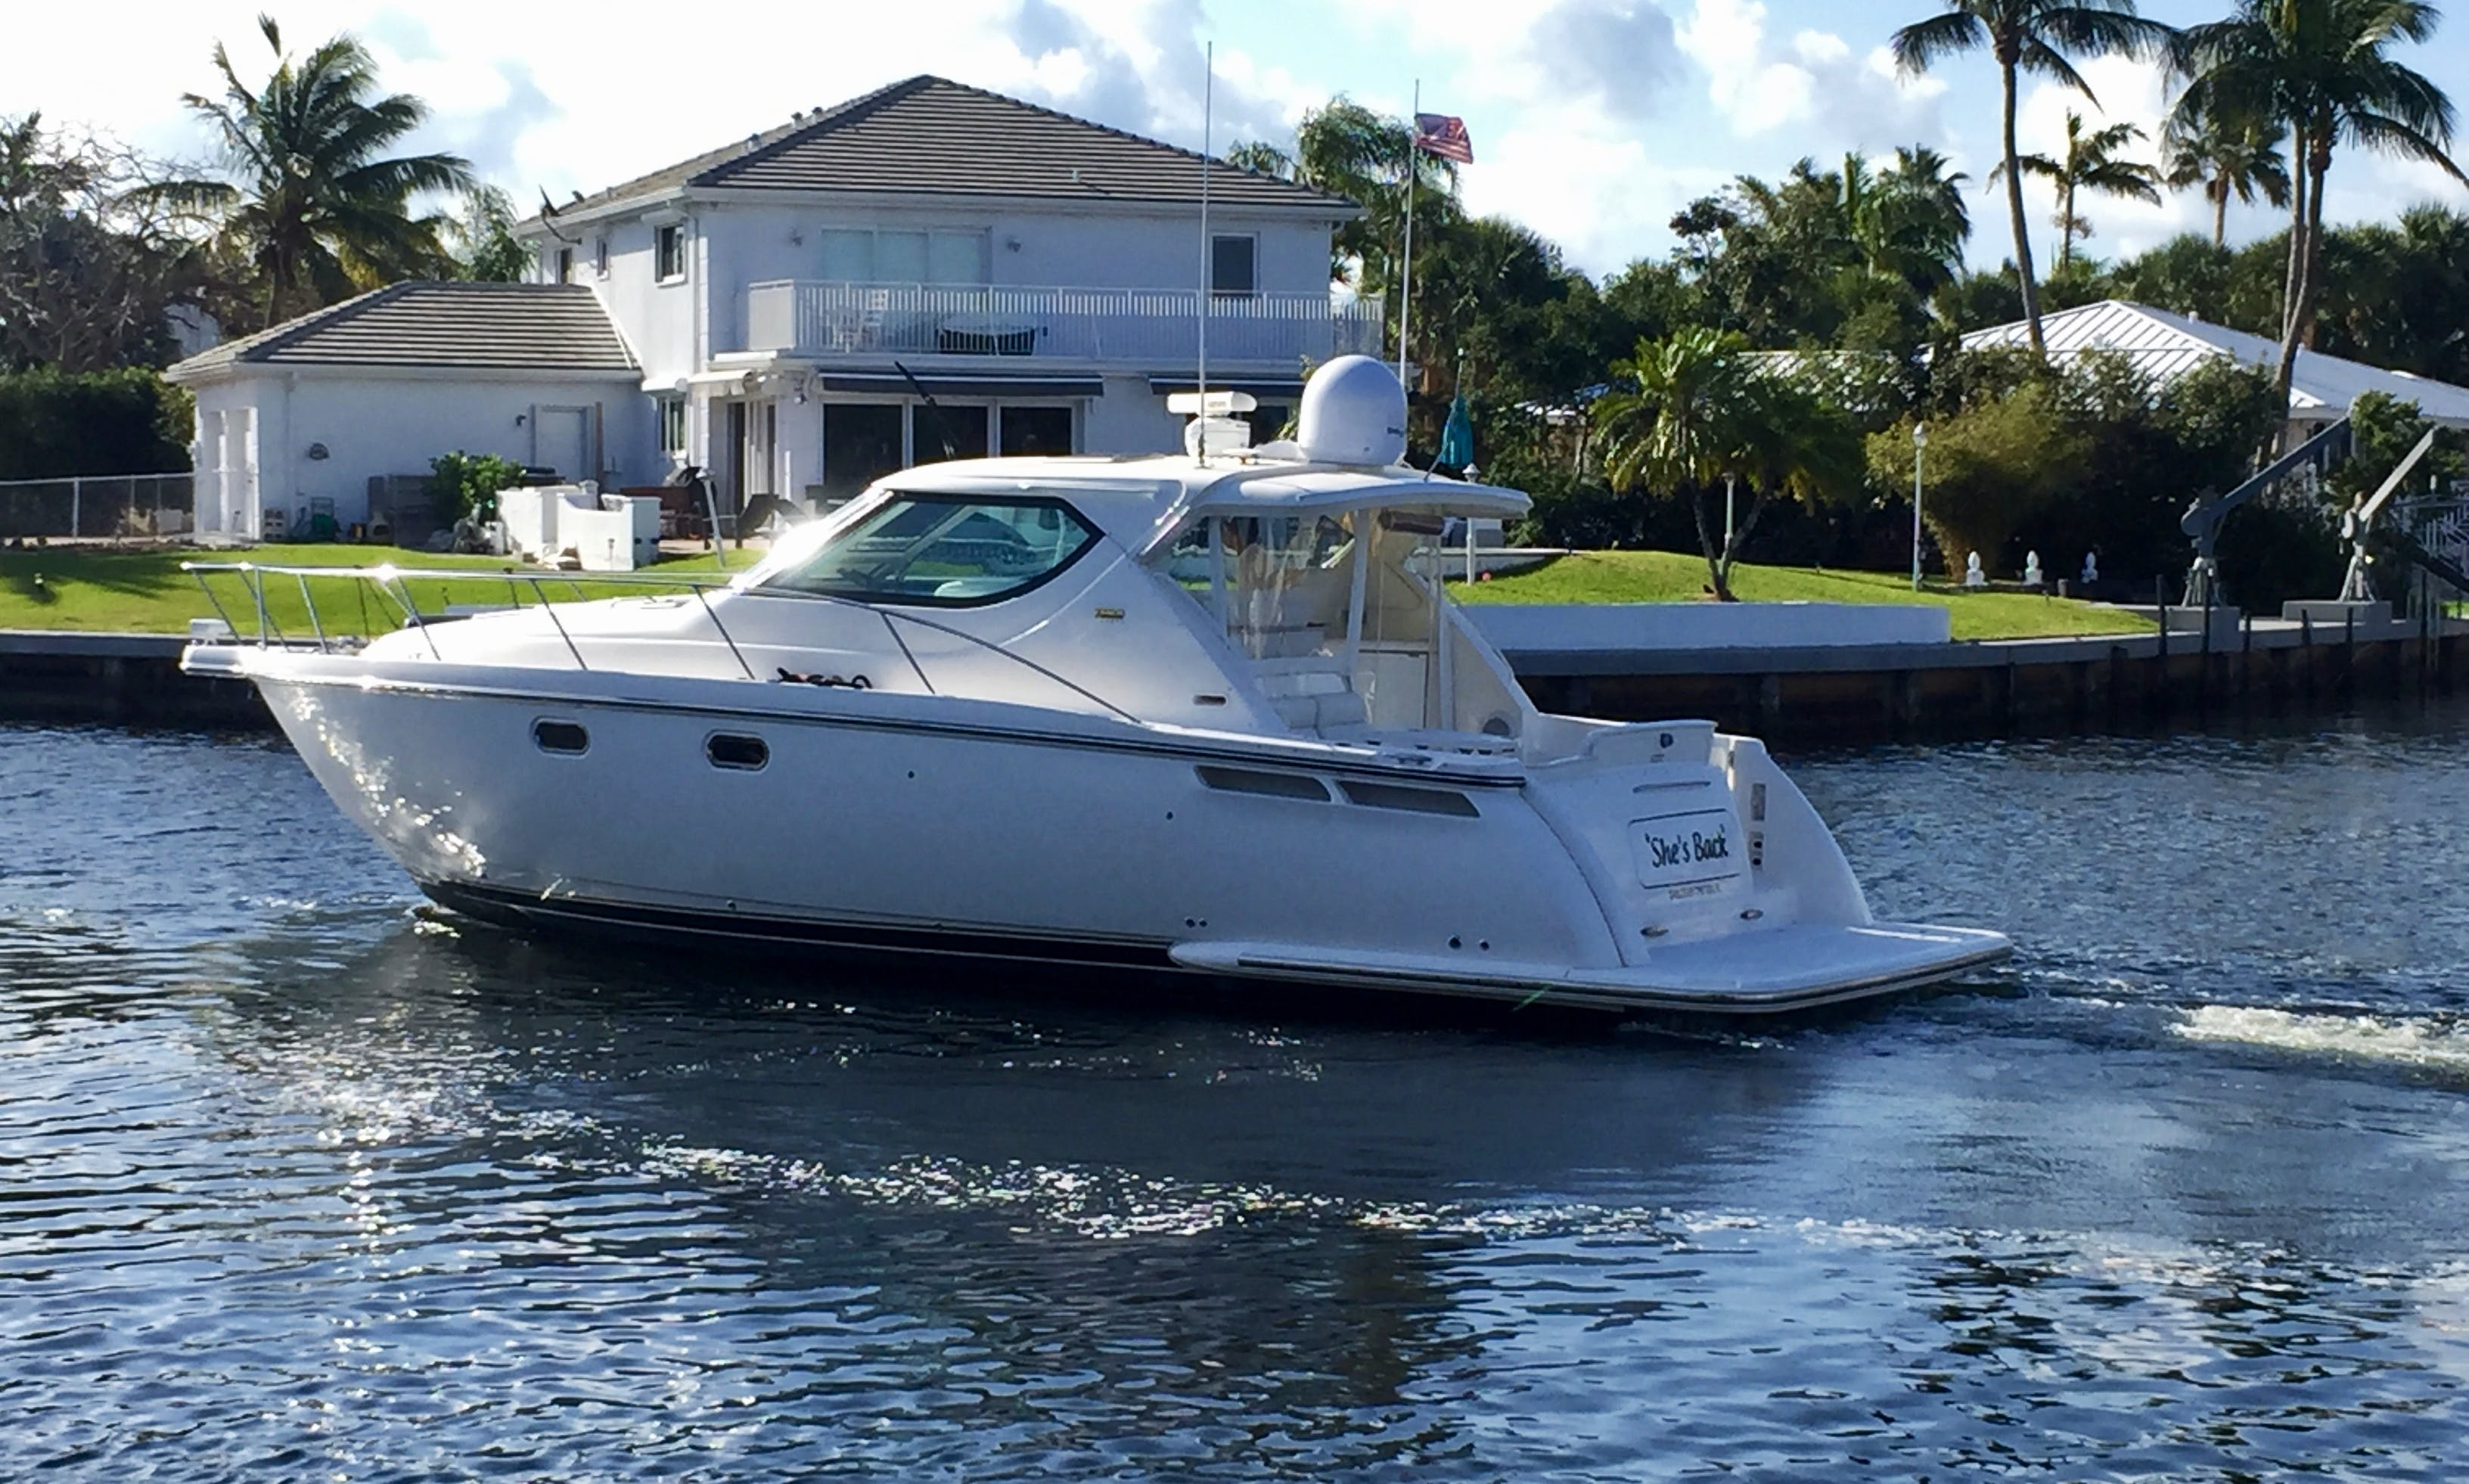 Luxury Cruising Yacht rental in Miami